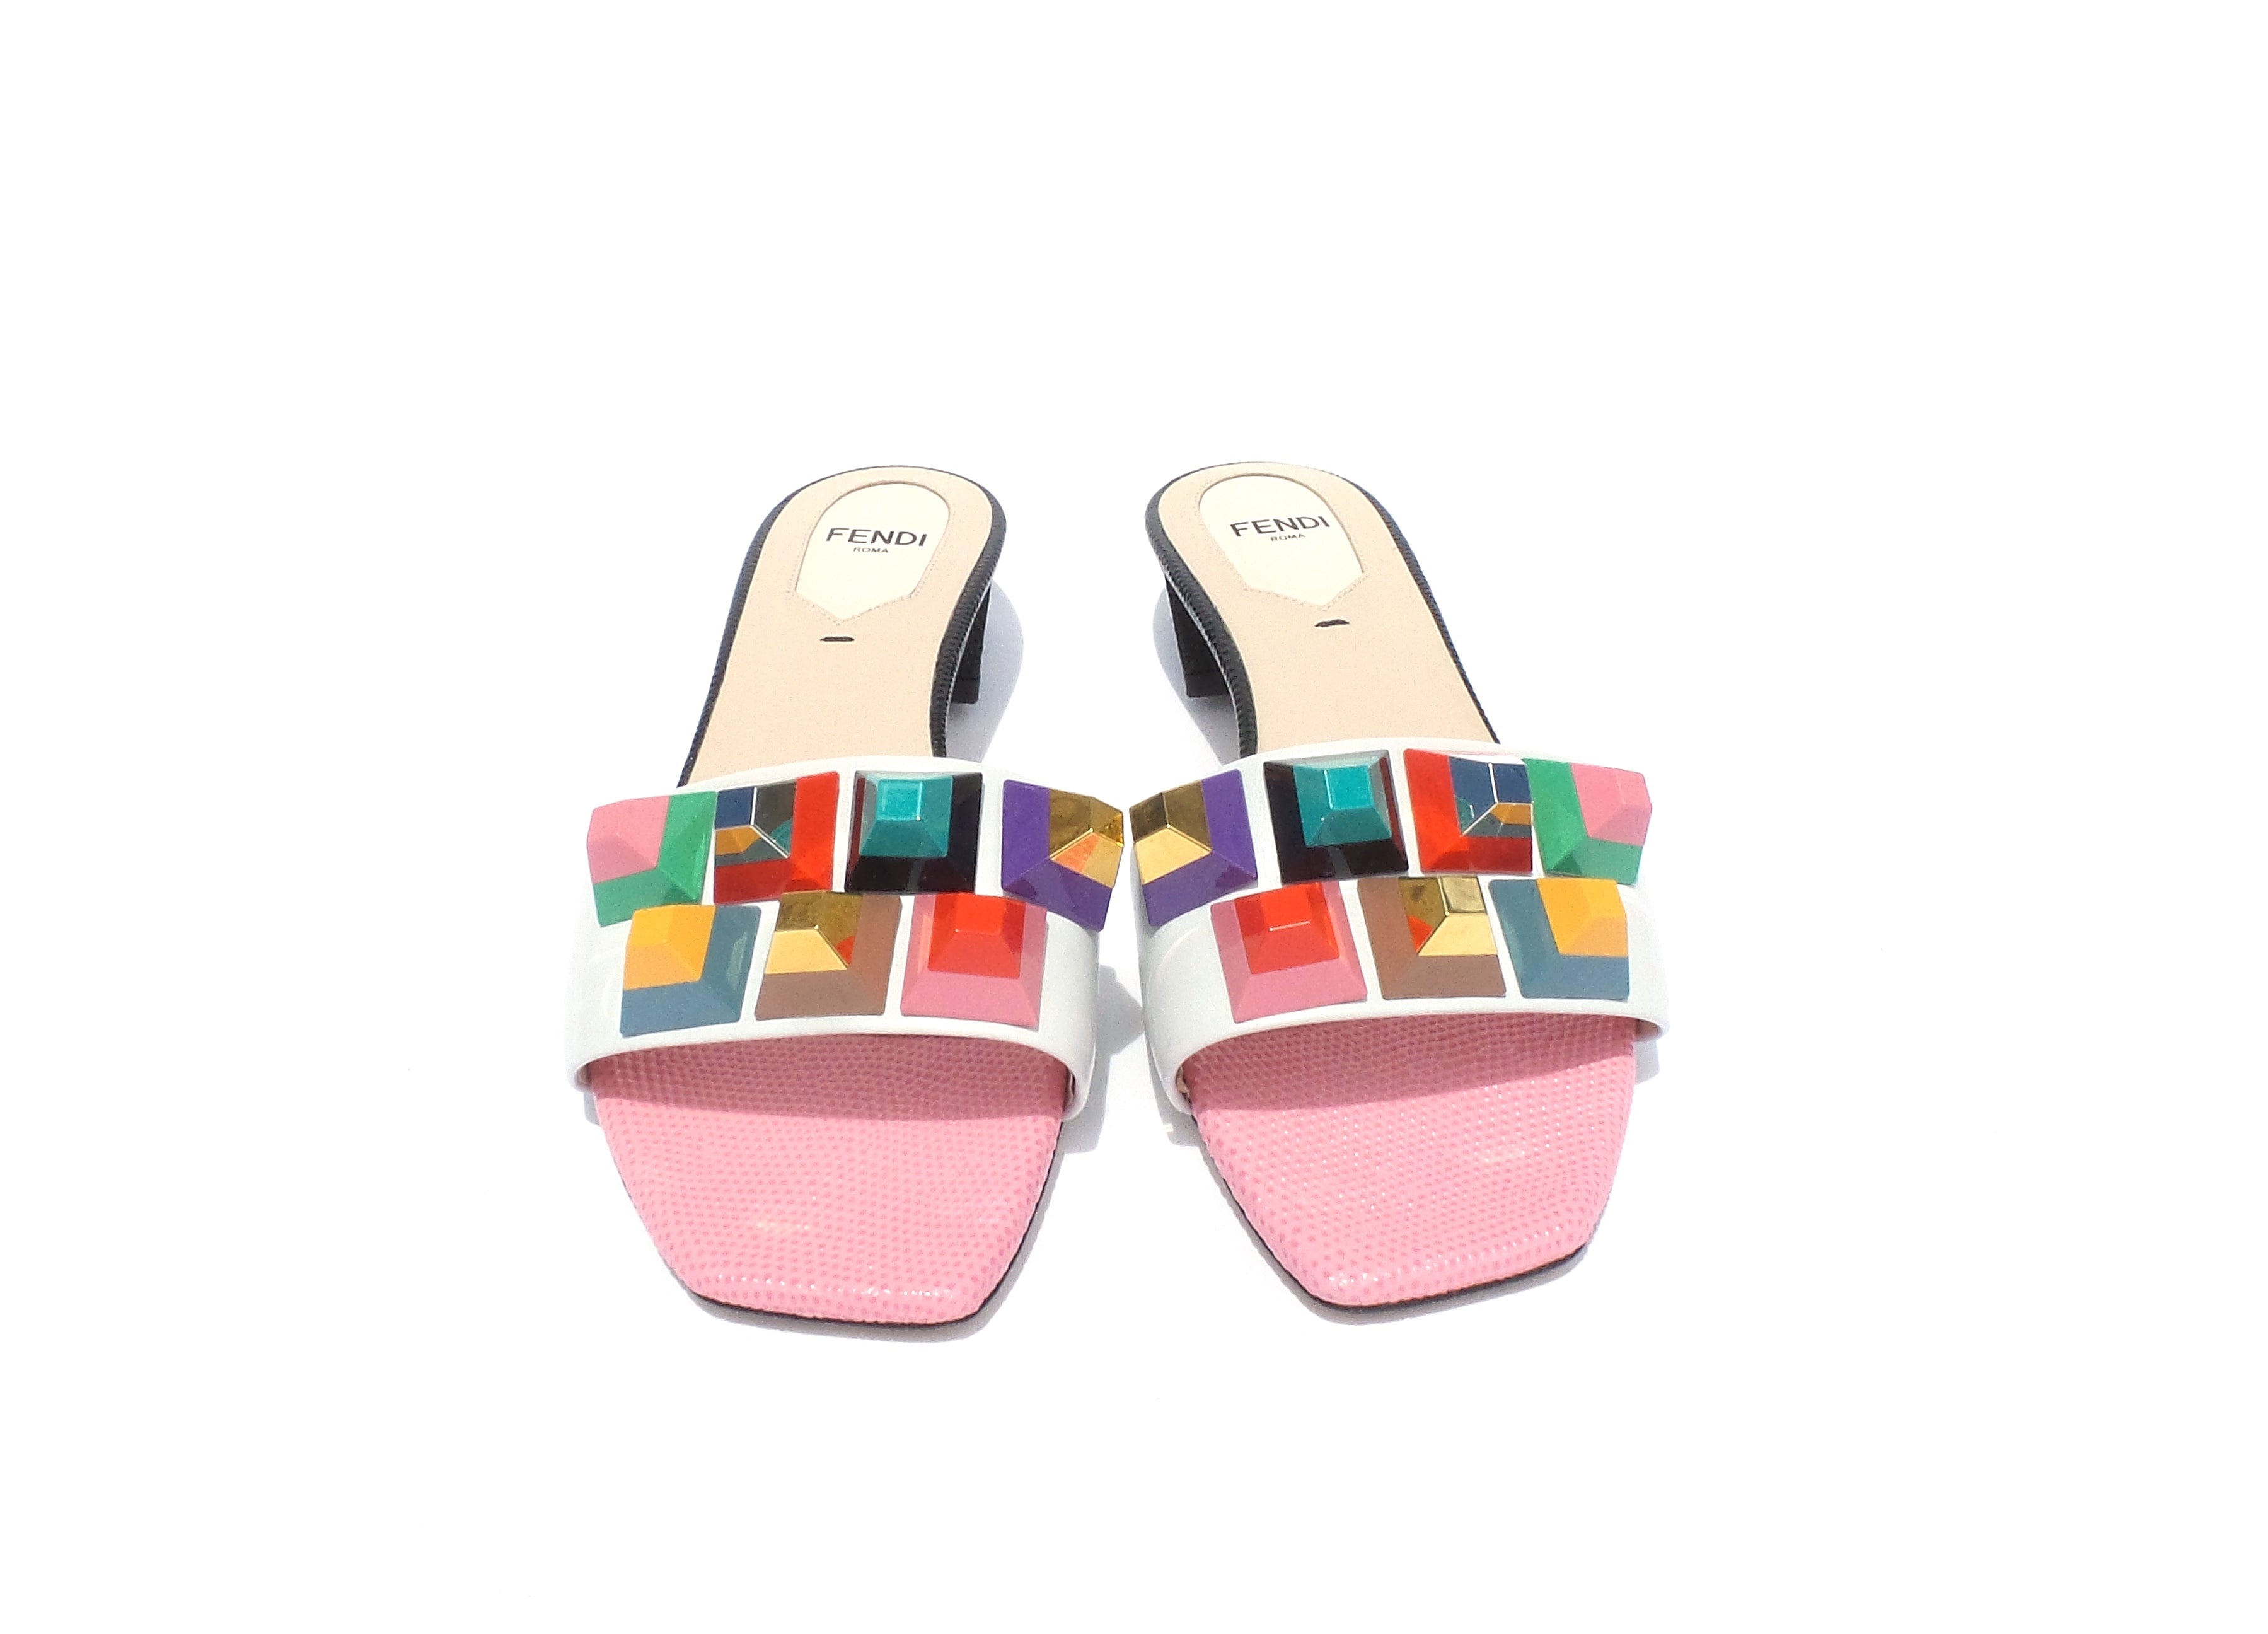 FENDI SS16 White Leather Multi Lollipop Pyramid Studded Slide Sandals 36.5 $700